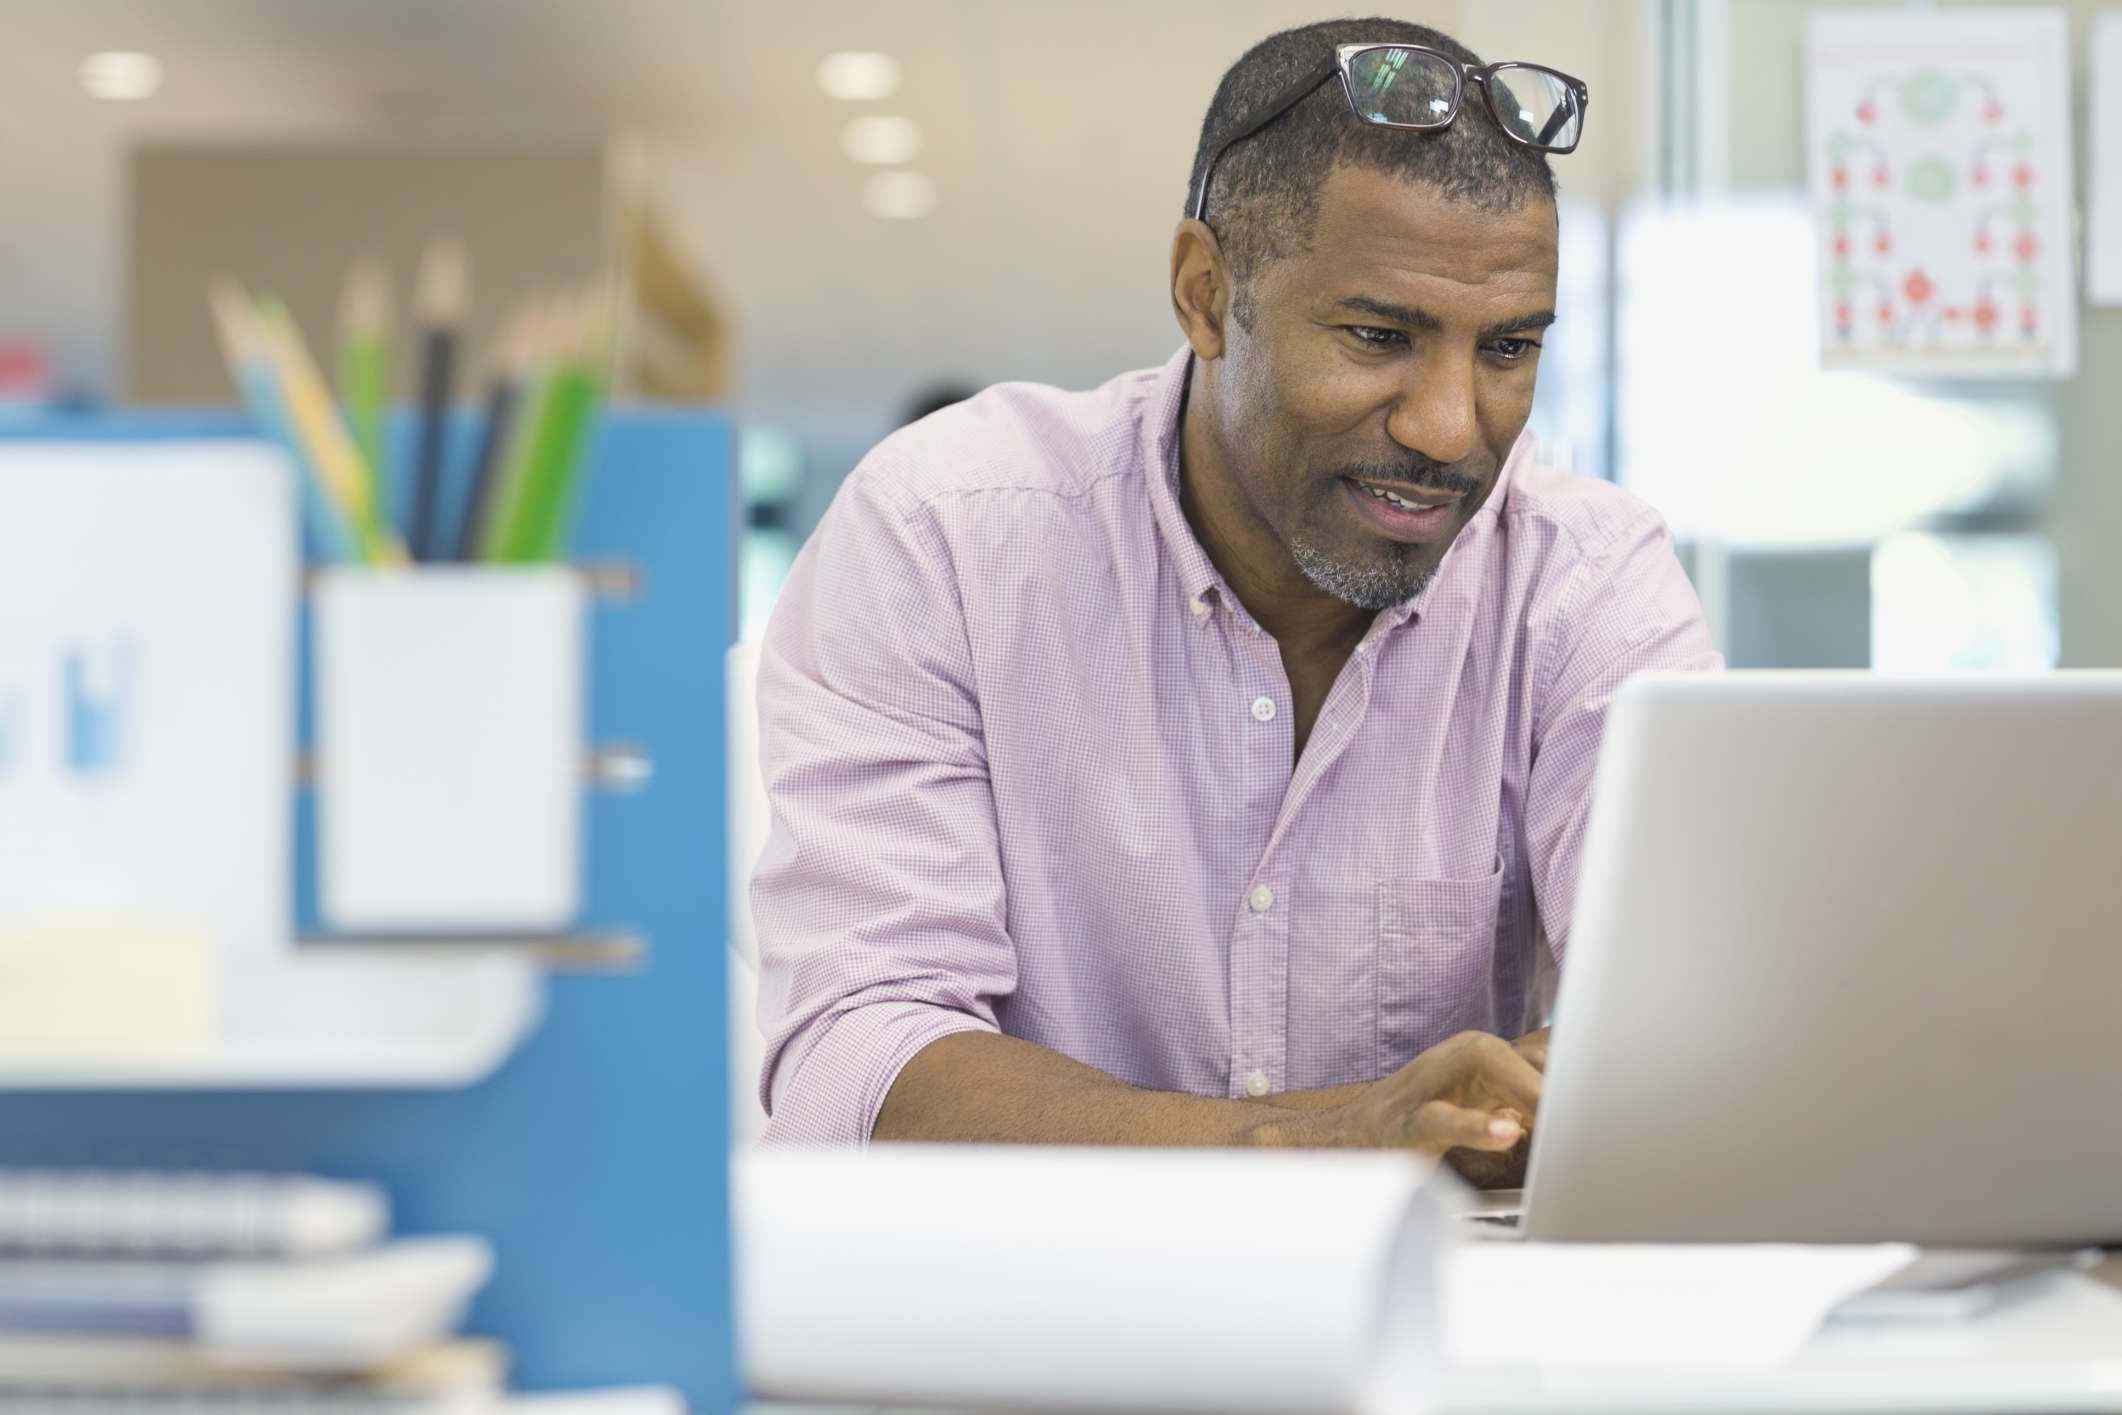 Man using computer in office